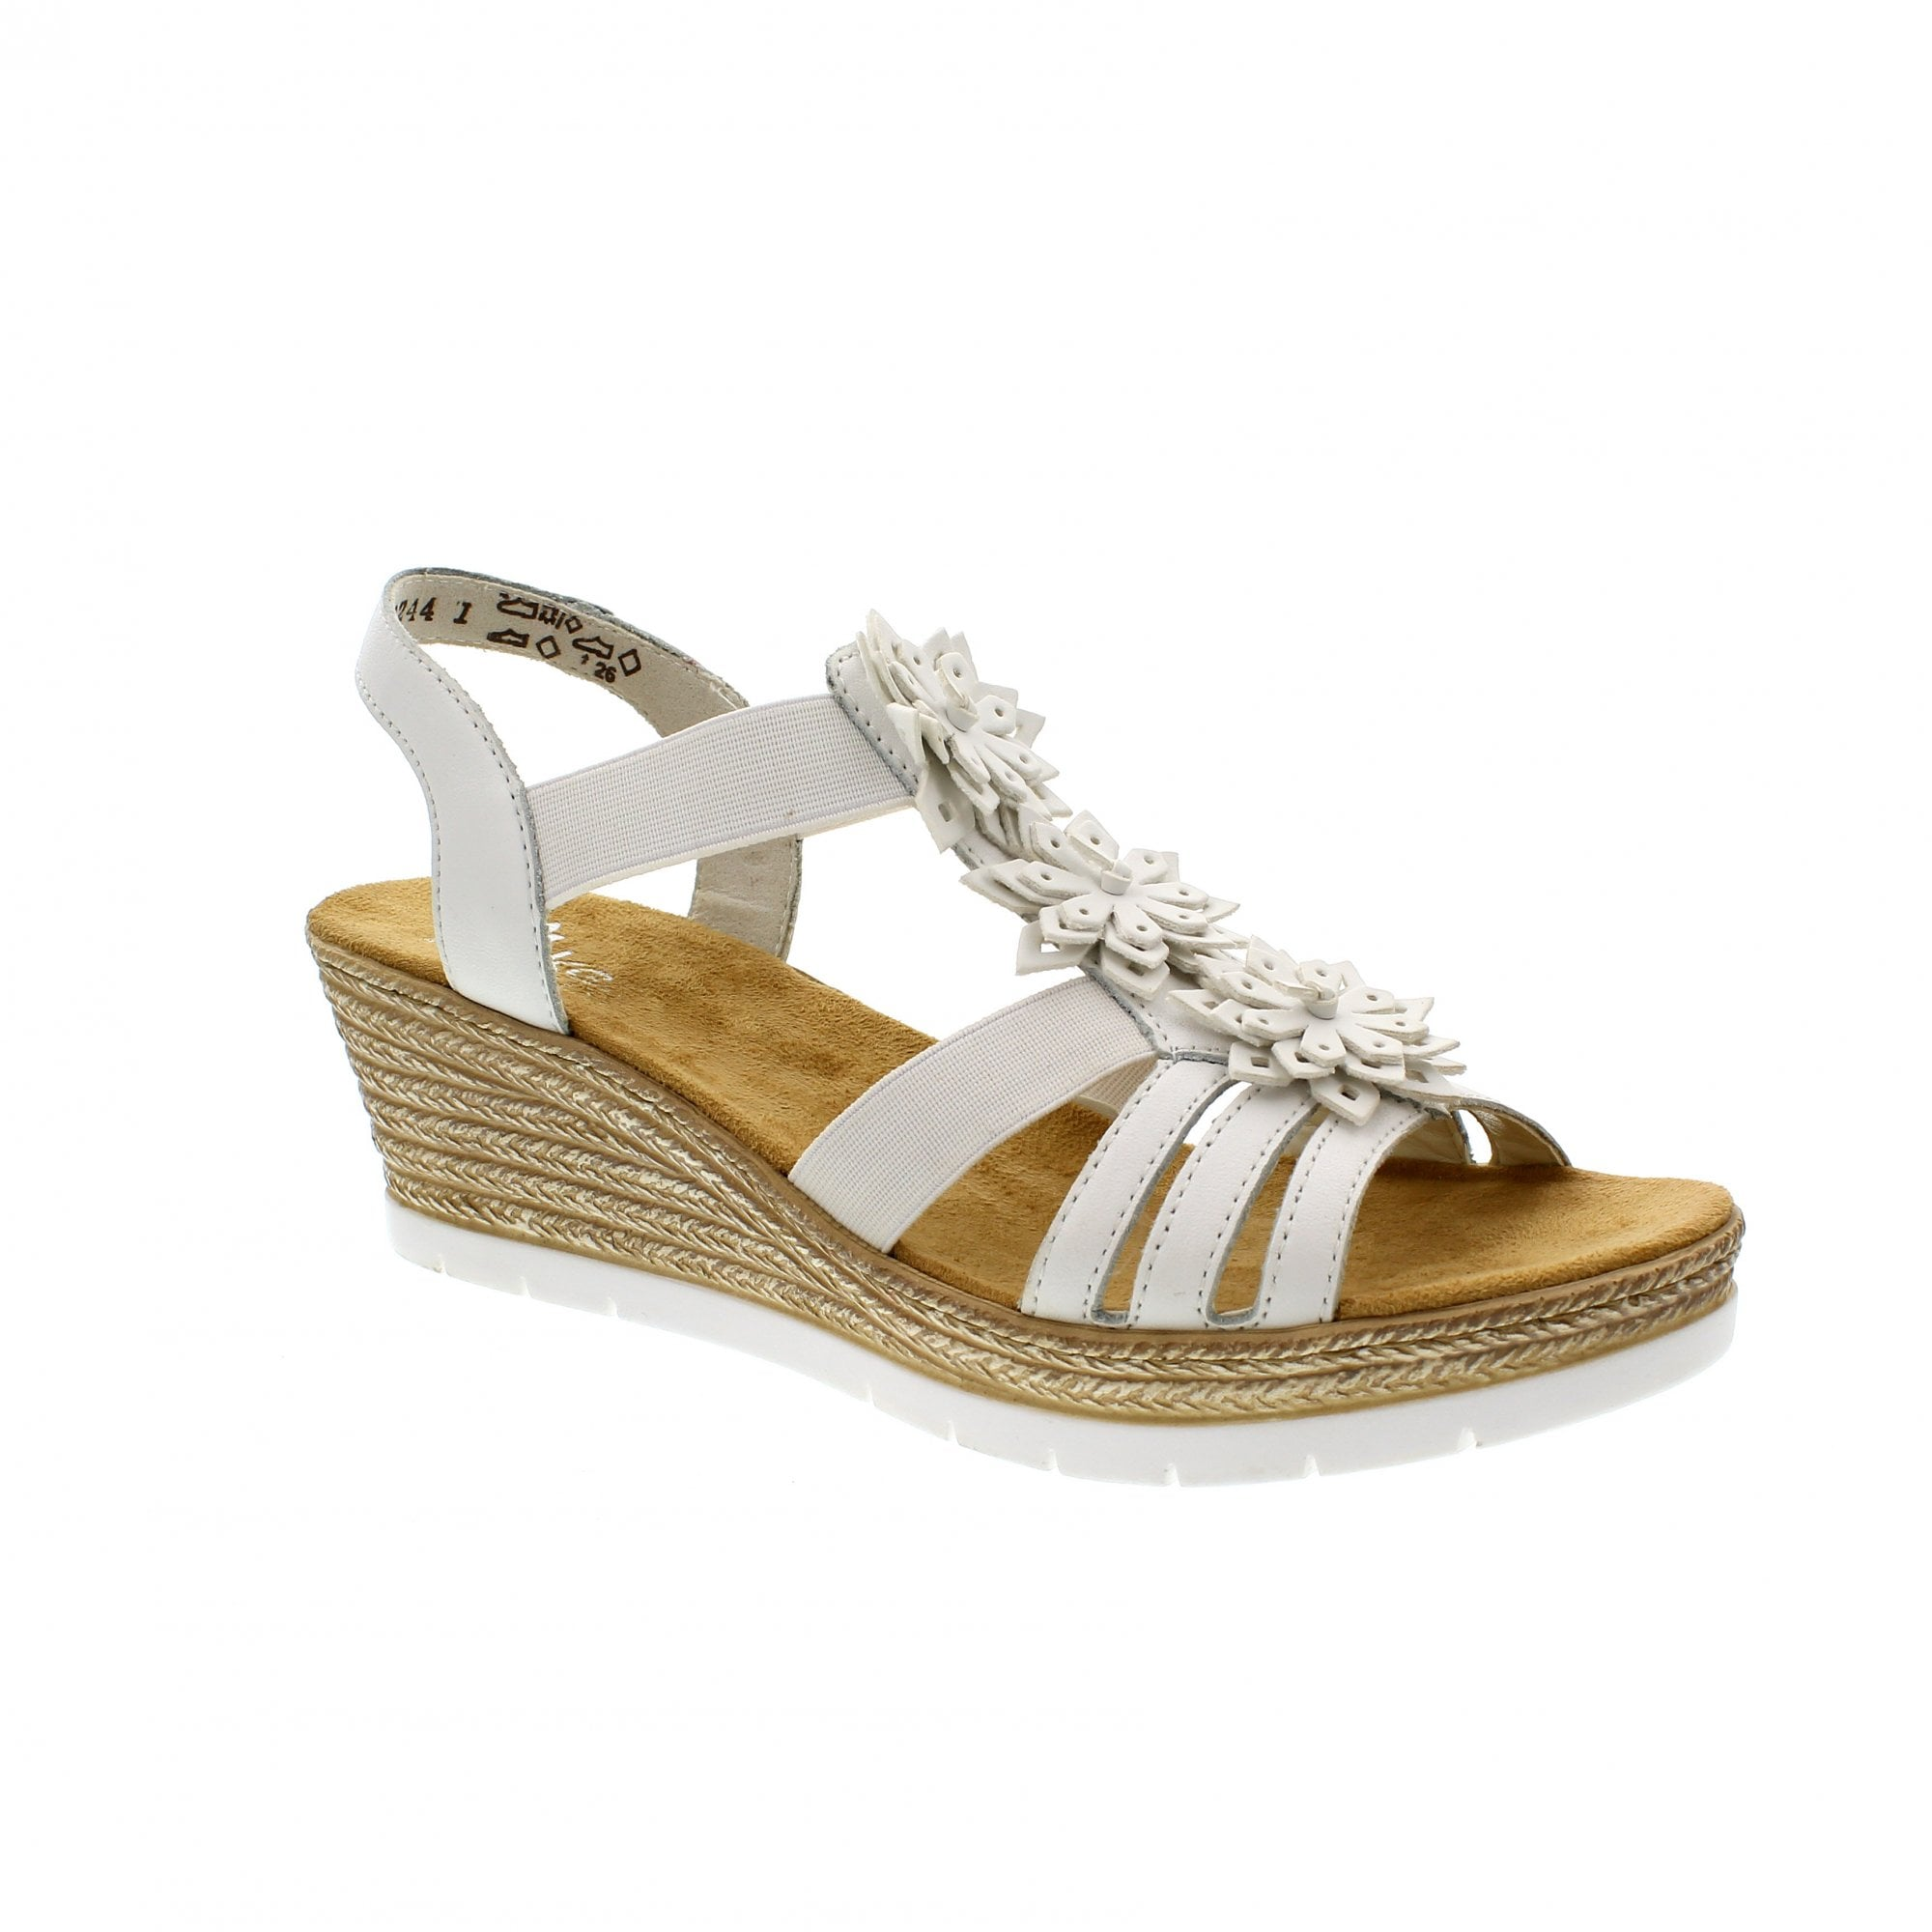 b6f2d0a4850 Free UK Delivery · Home · Womens · Sandals · Sandals  Rieker 61949-80. Tap  image to zoom. 61949-80. 61949-80